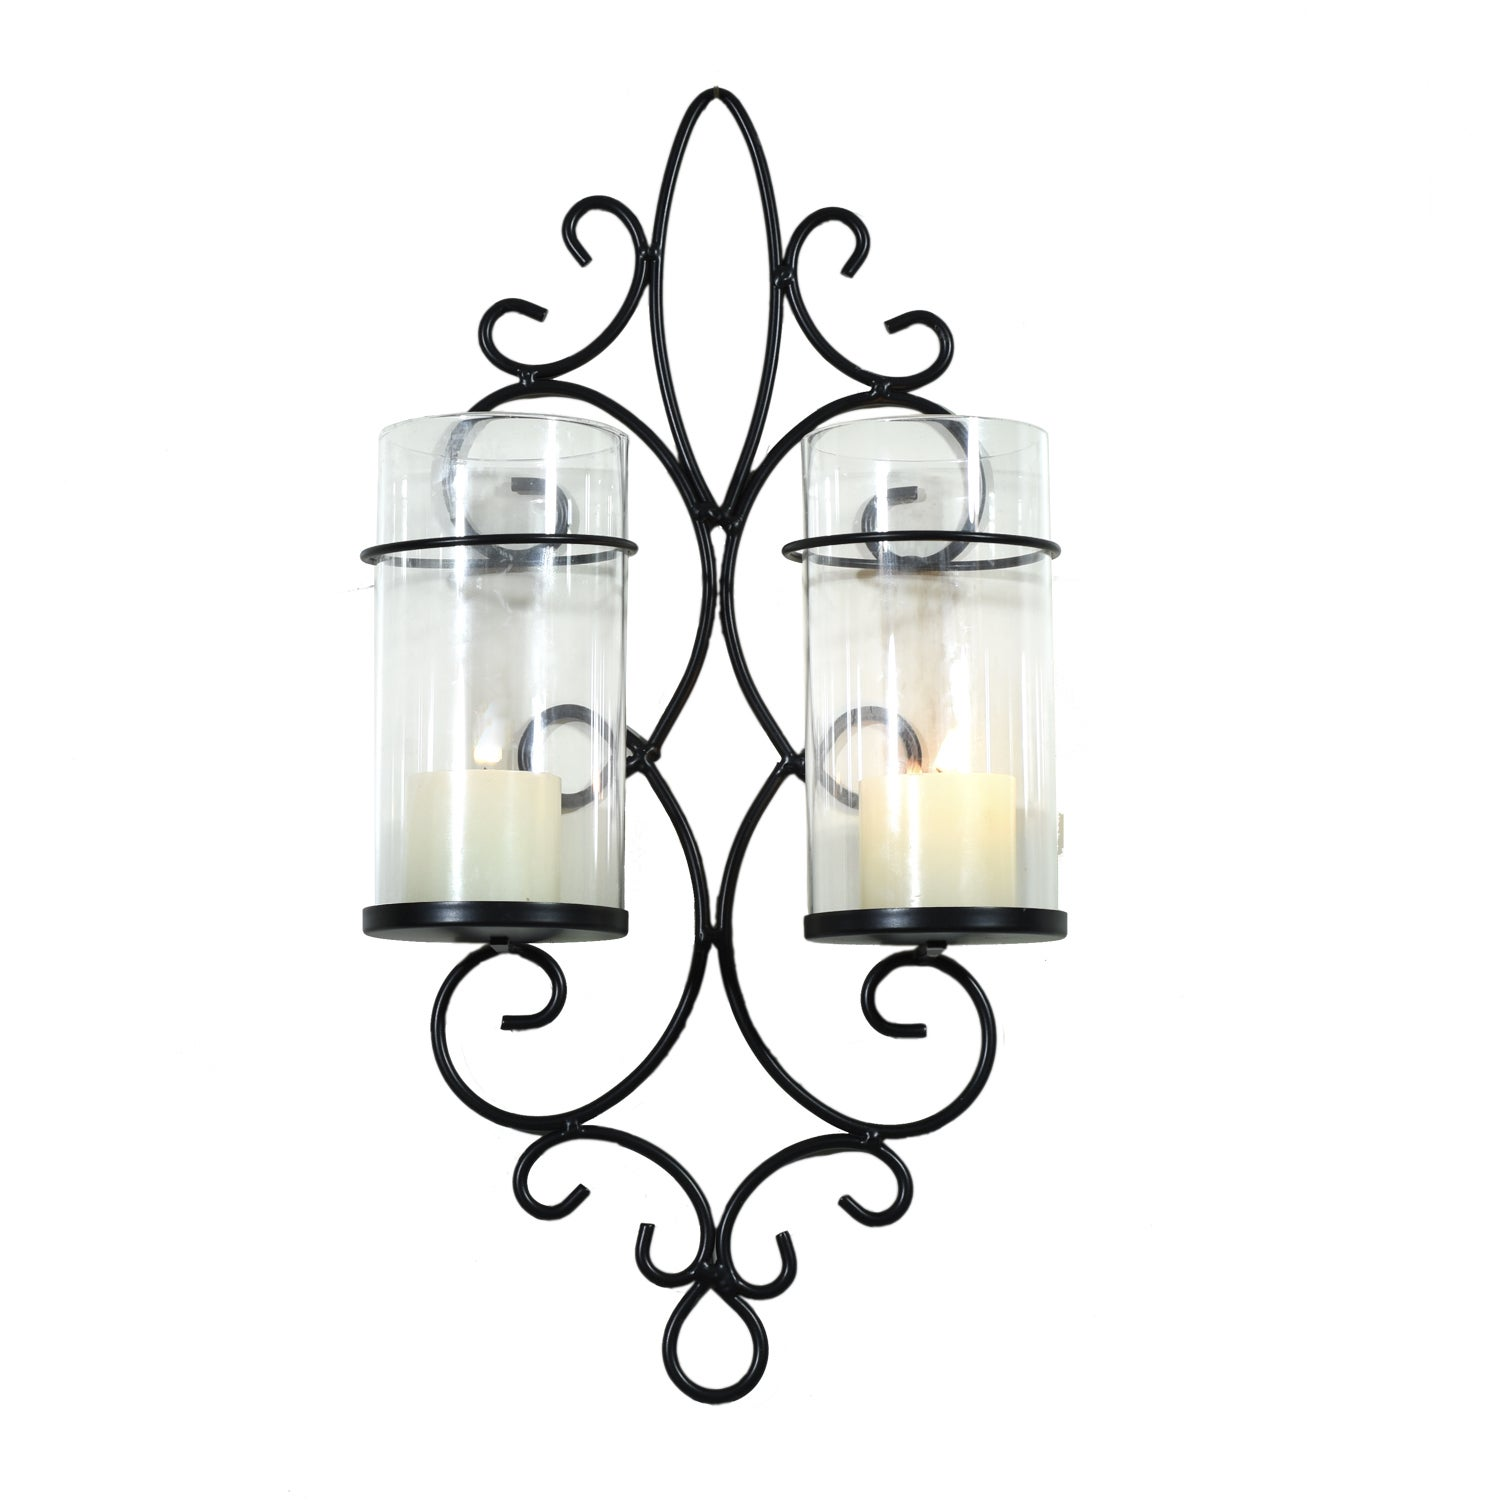 Adeco Metal Wall Sconces with 2 Glass Candle Holders (black)